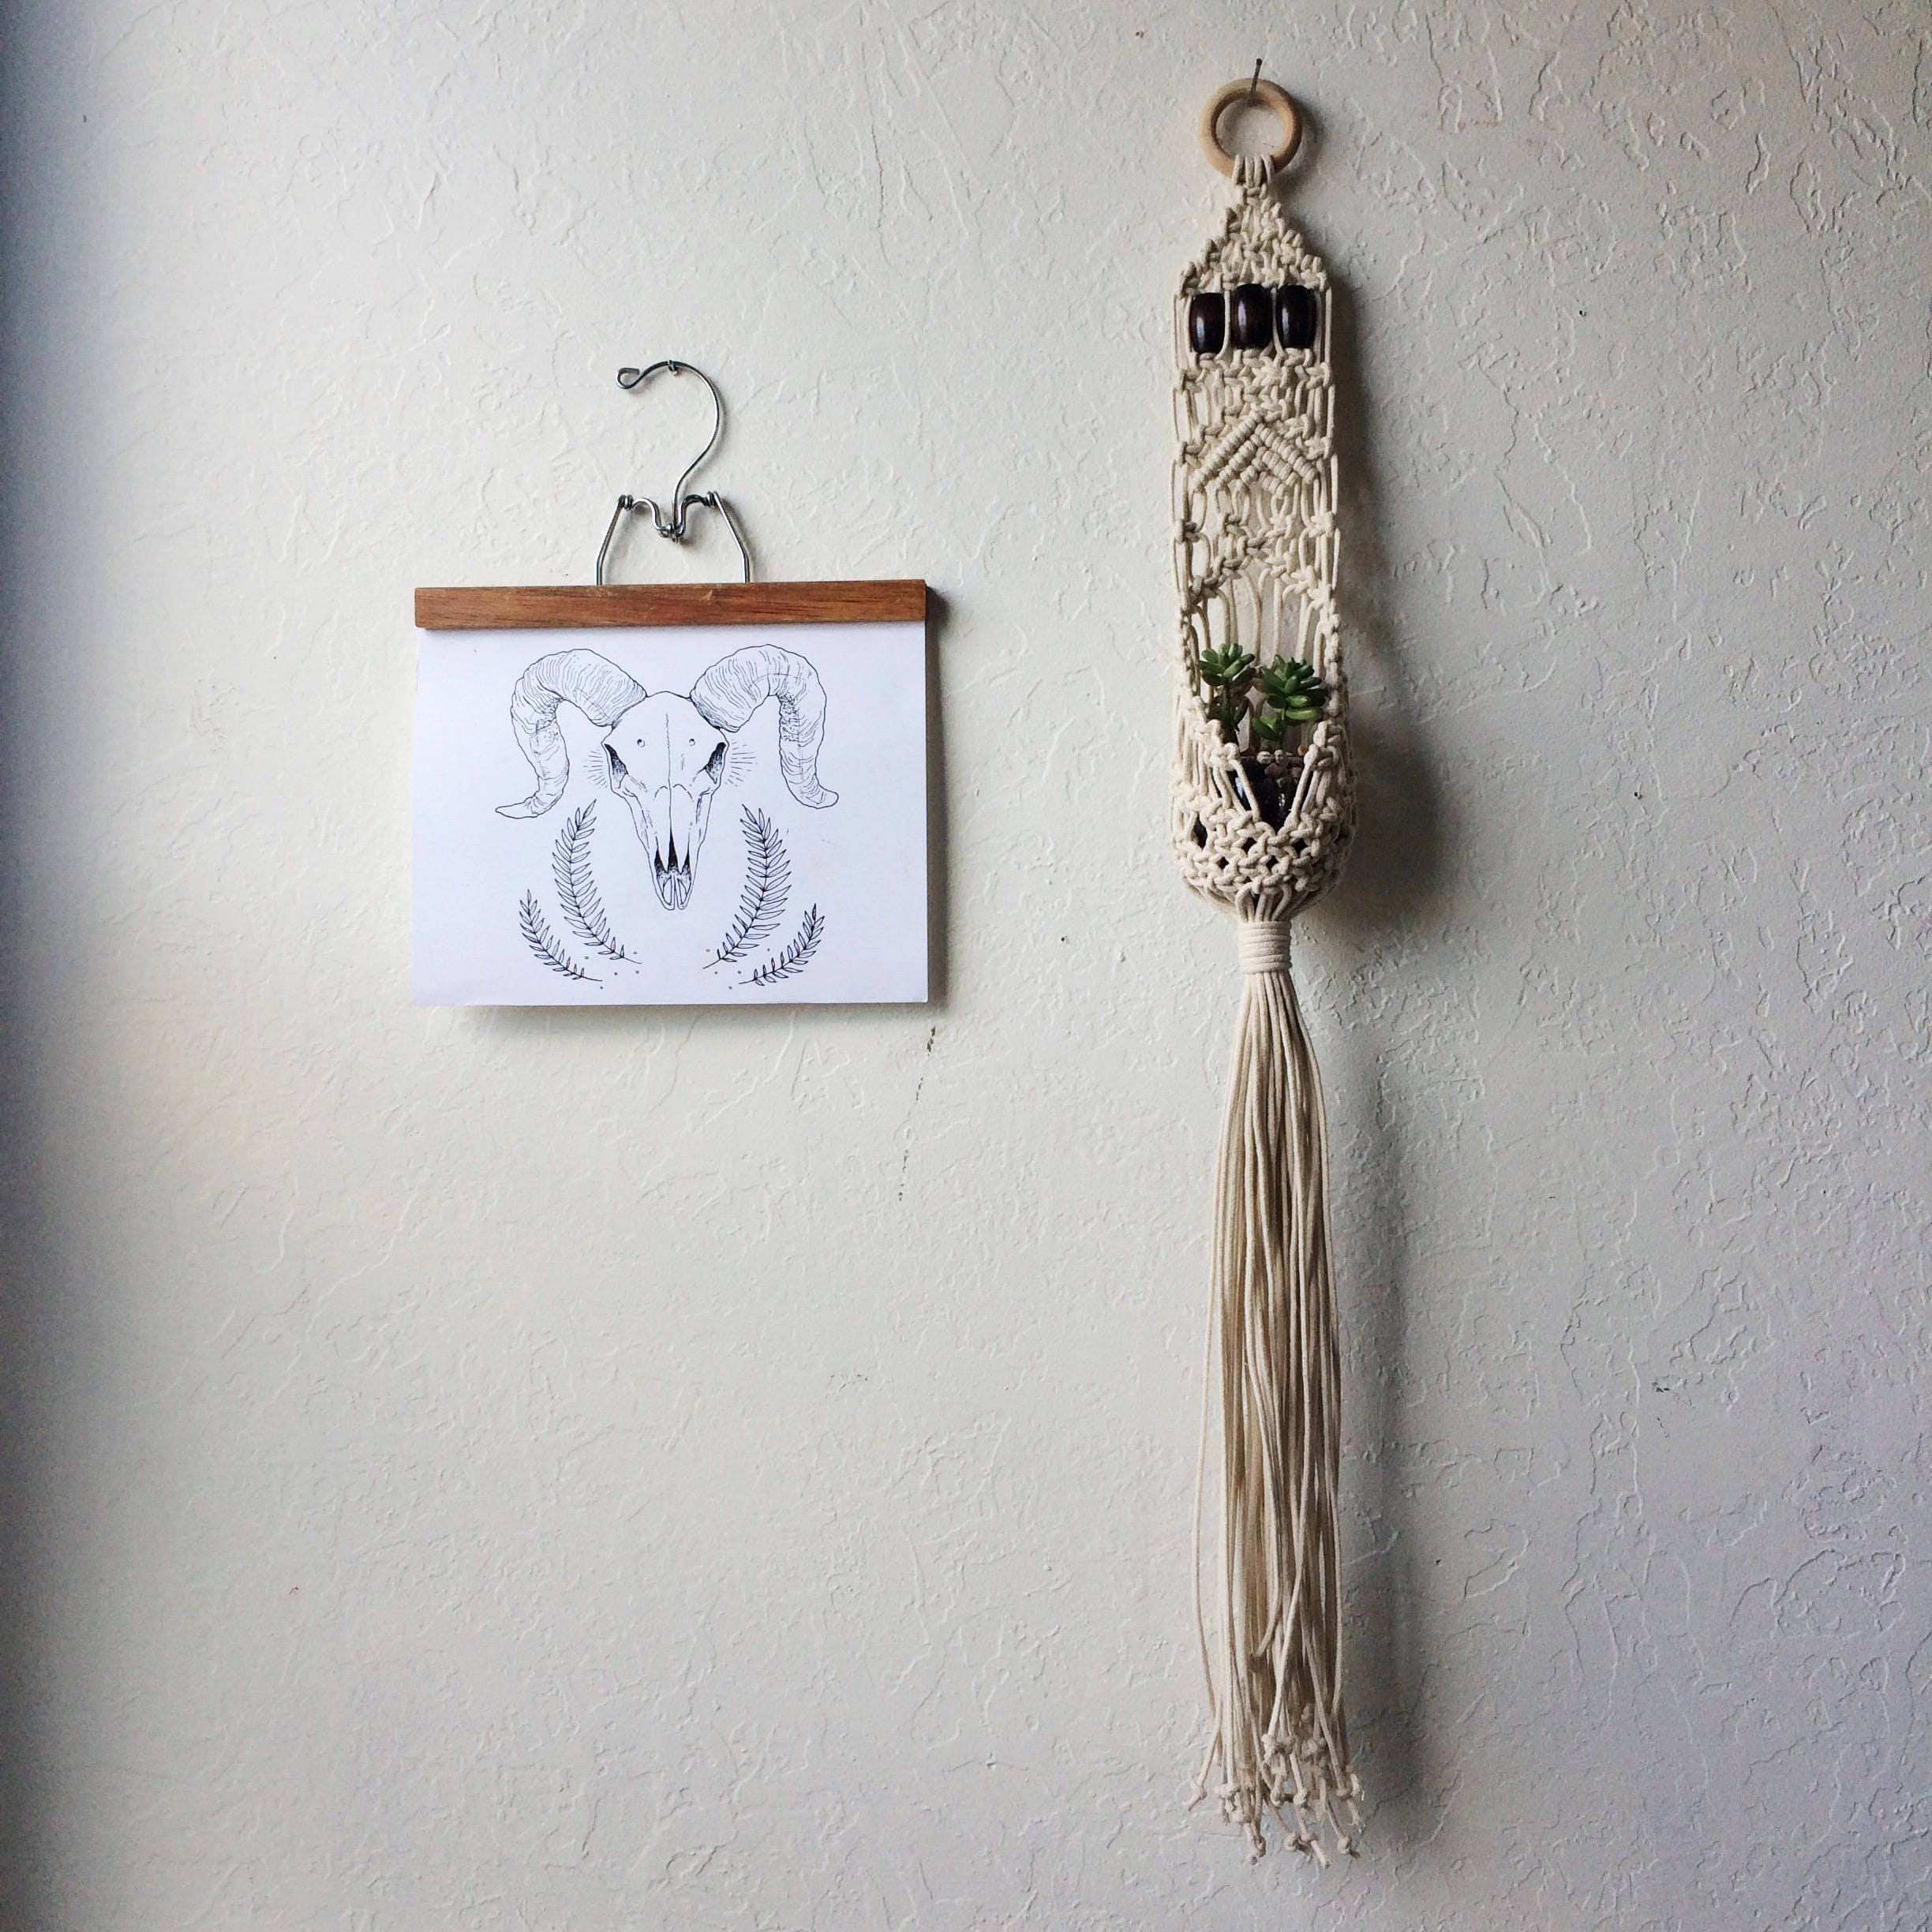 Macrame Hanging Plant Pouch Diy Kit For Beginners